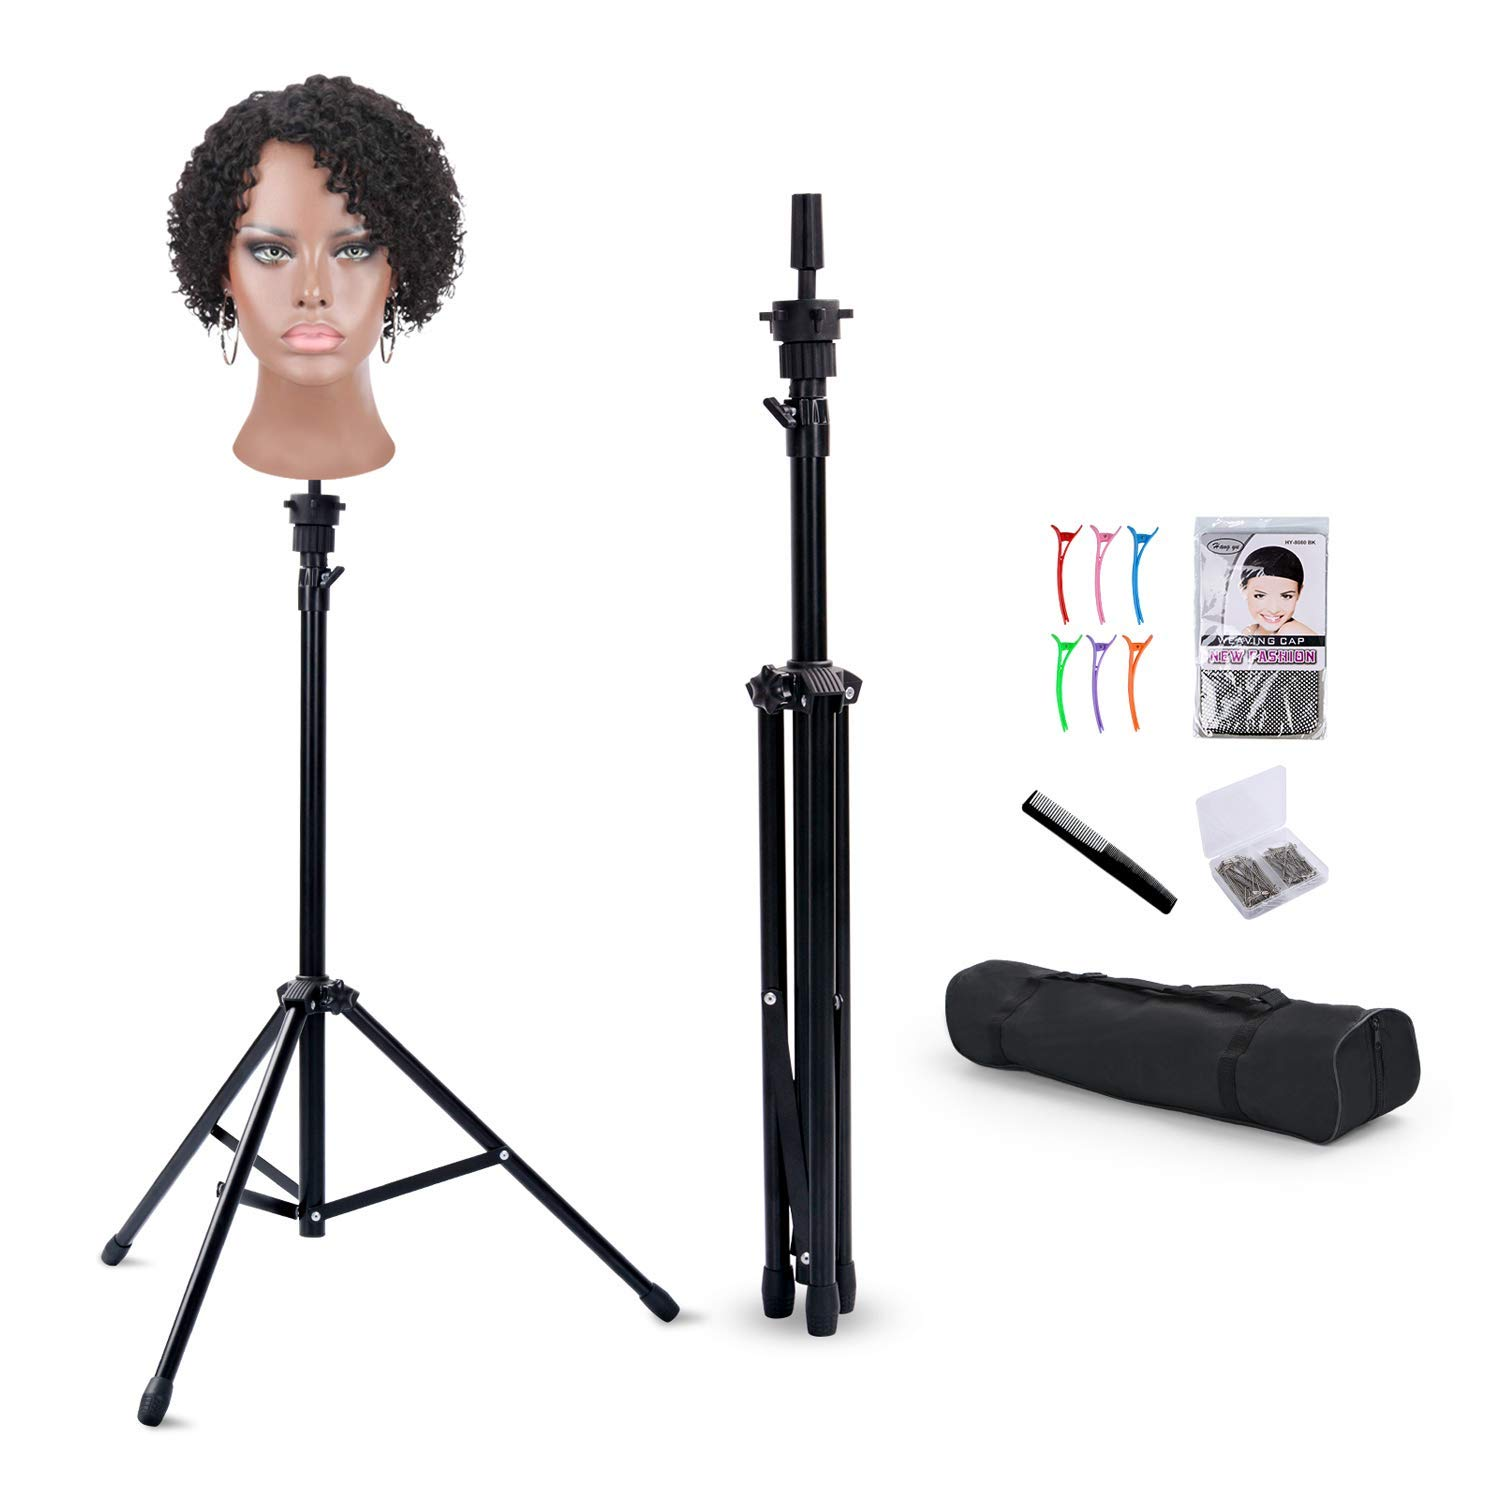 Reinforced Wig Stand Tripod Mannequin Head Stand, Adjustable Wig Head Stand Holder for Cosmetology Hairdressing Training with T-with Wig Caps, T-Pins, Comb, Hair Clip, Carrying Bag by T-SIGN